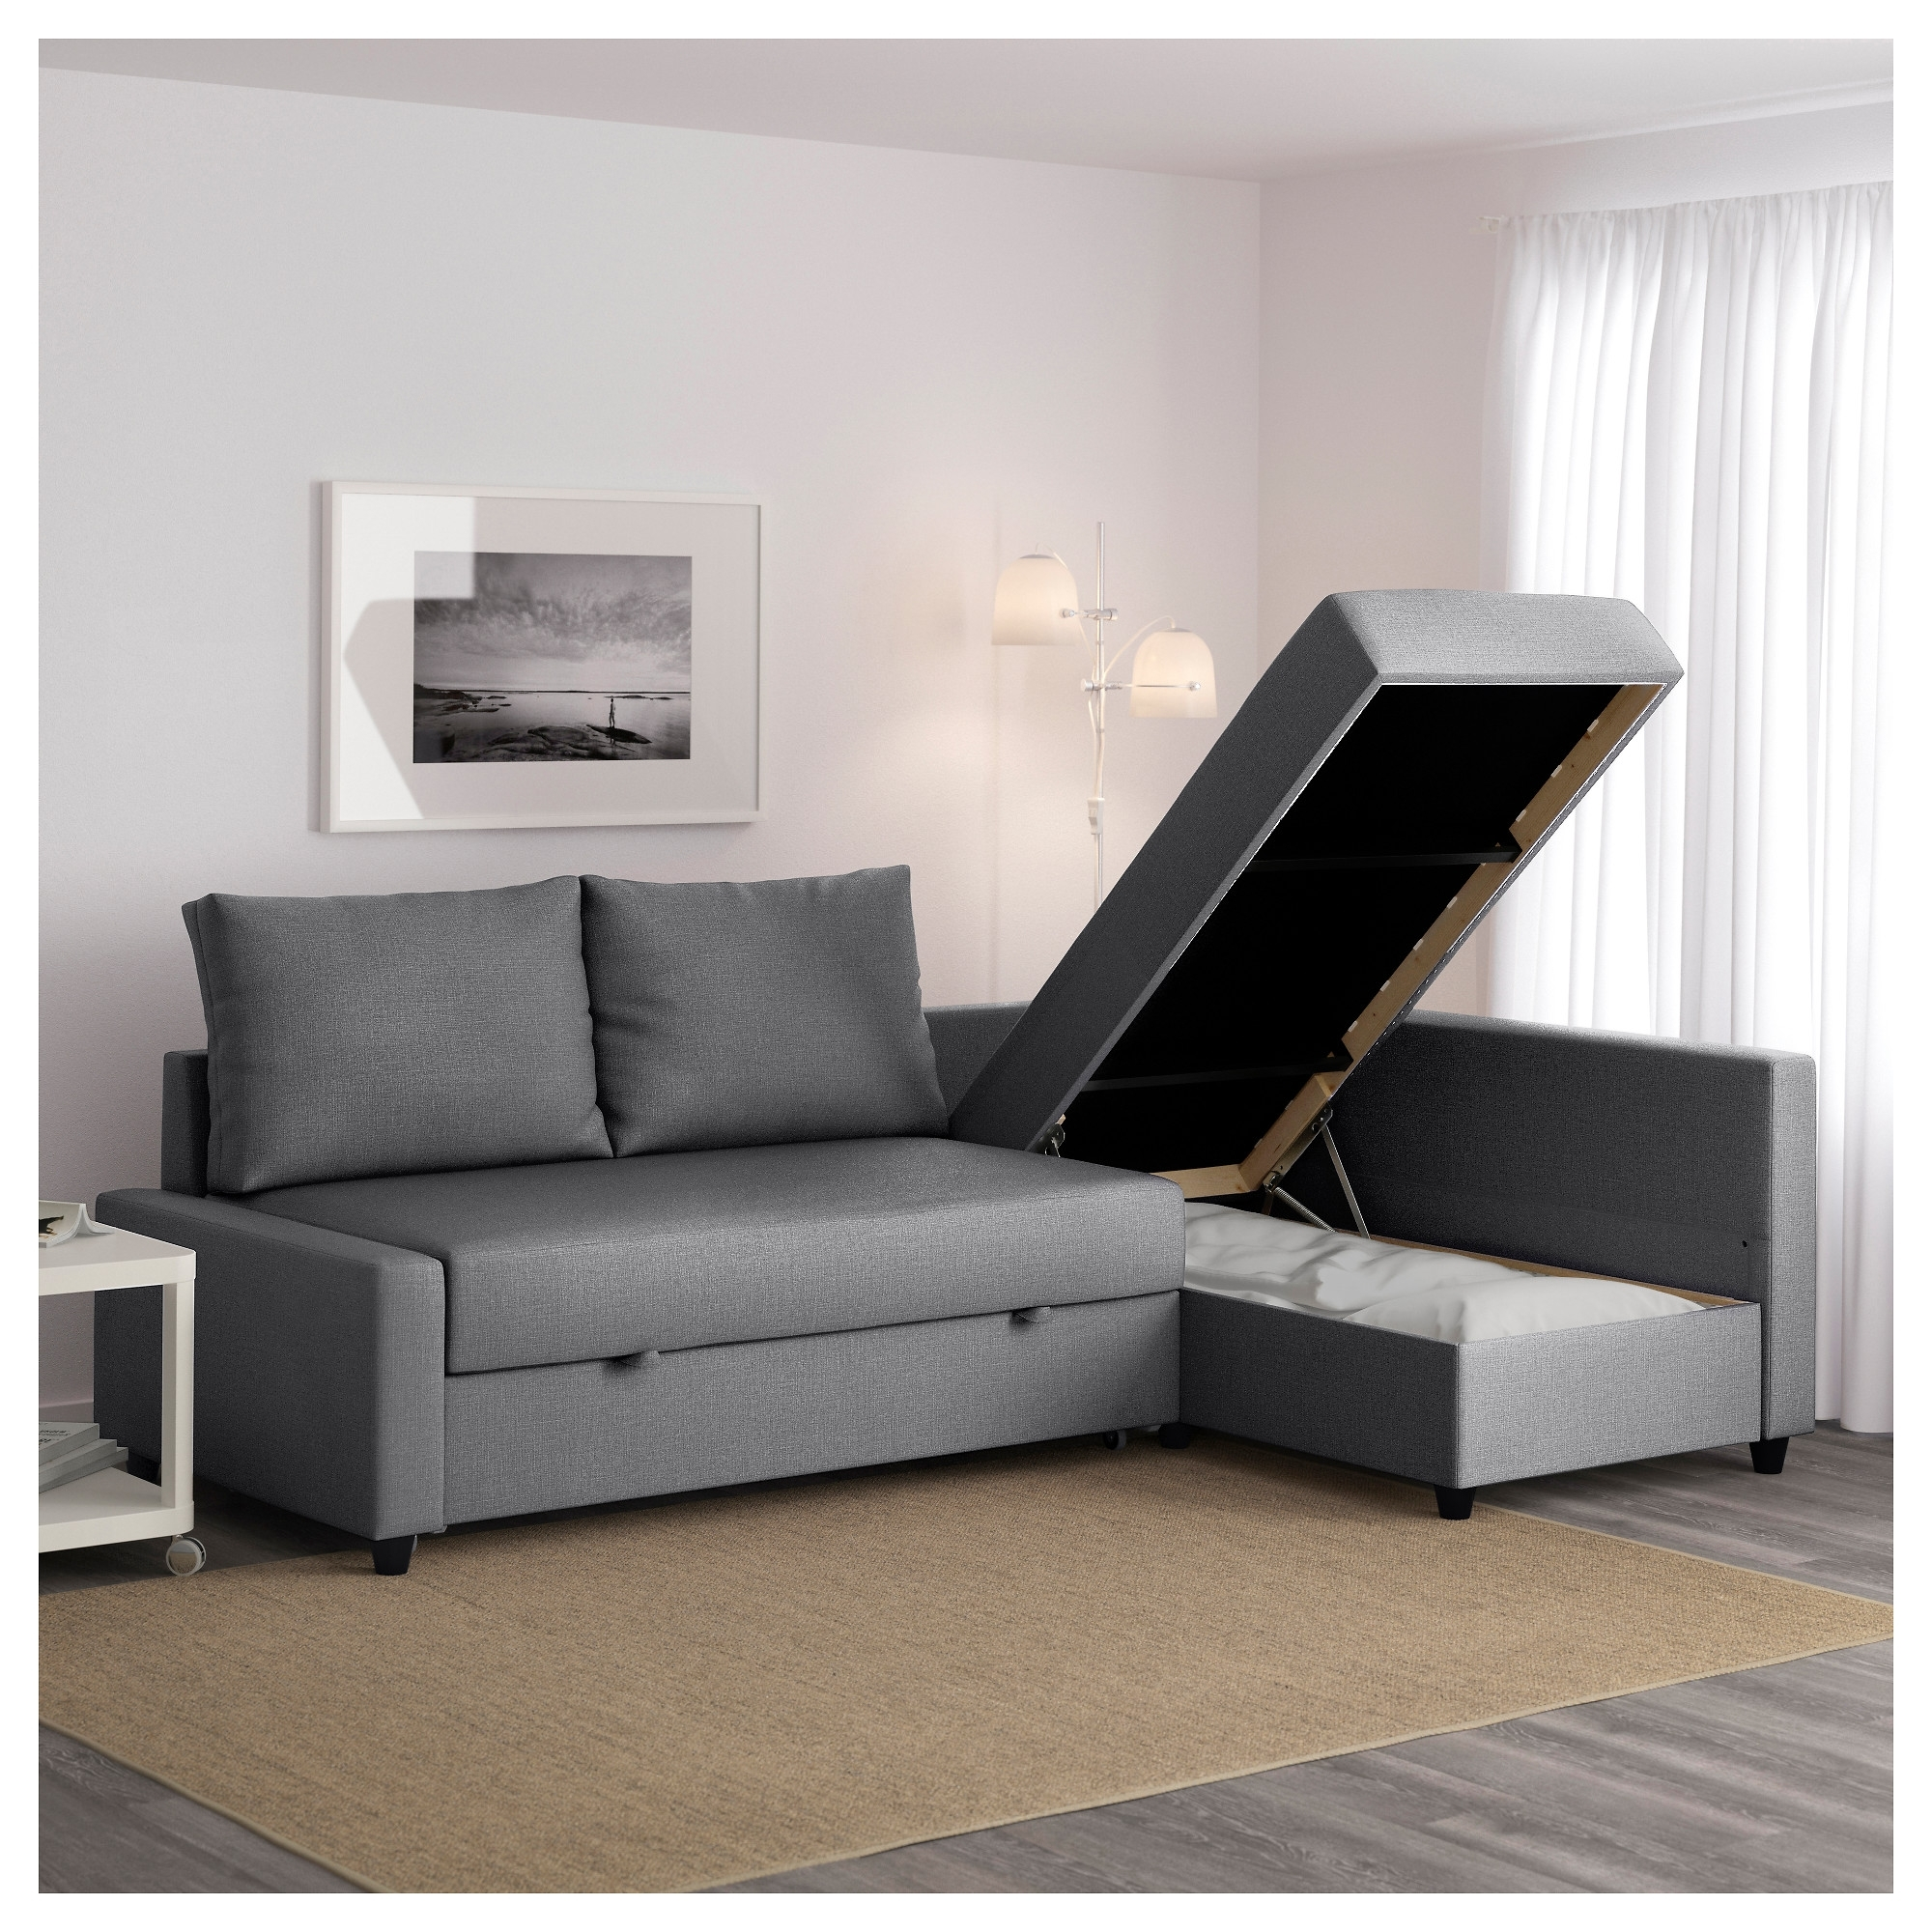 Fashionable Friheten Corner Sofa Bed With Storage Skiftebo Dark Grey – Ikea In Chaise Sofa Beds With Storage (View 7 of 15)